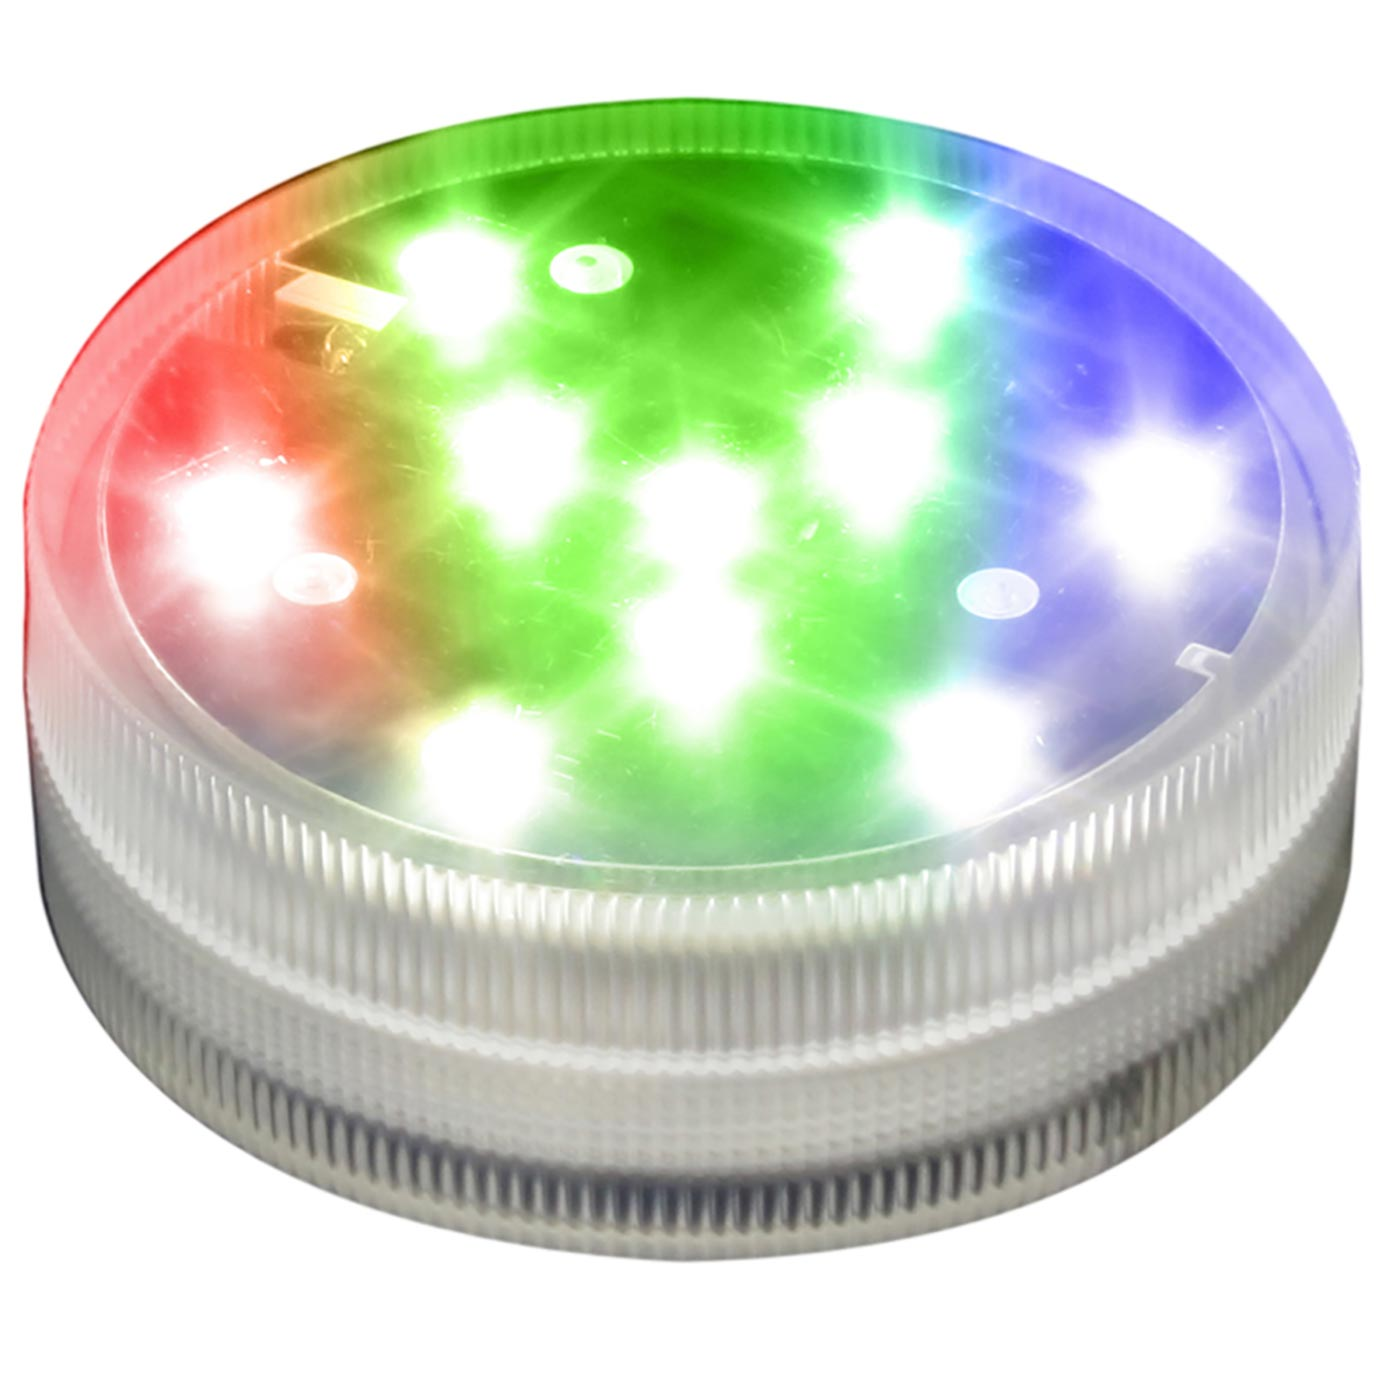 7cm SubLite10™ Submersible R/C 10 Super Bright LED RGB